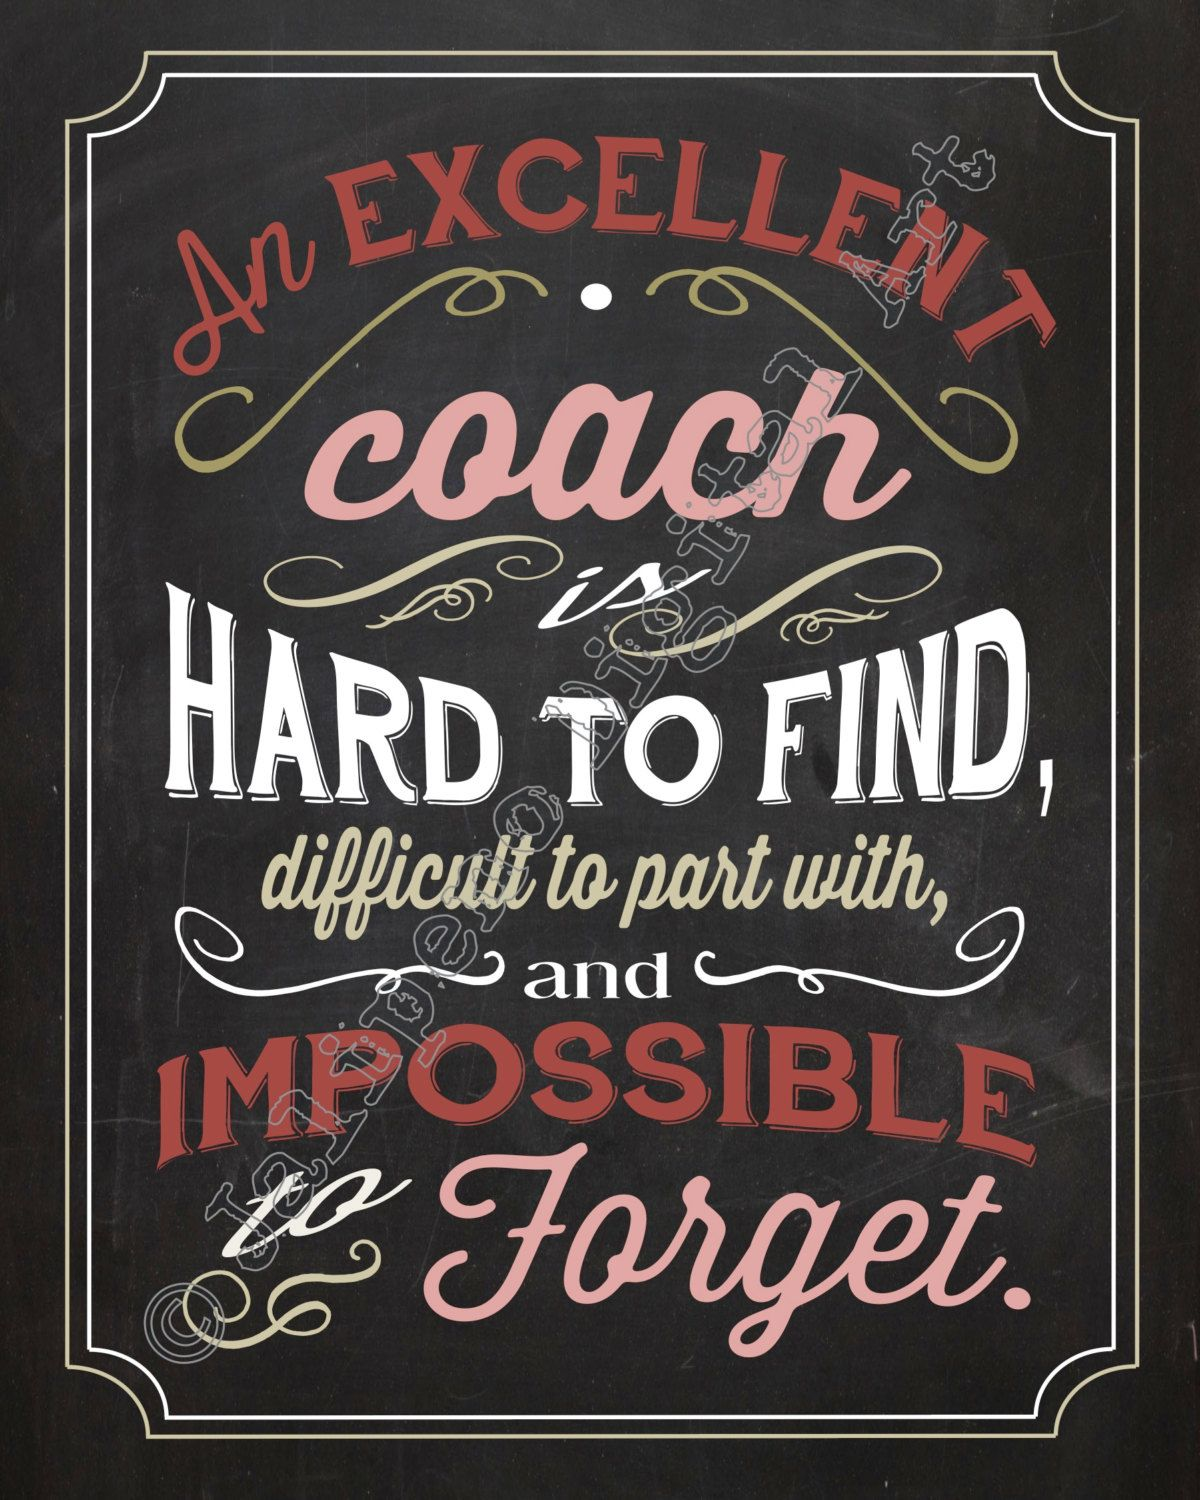 An excellent coach is hard to find difficult to part by